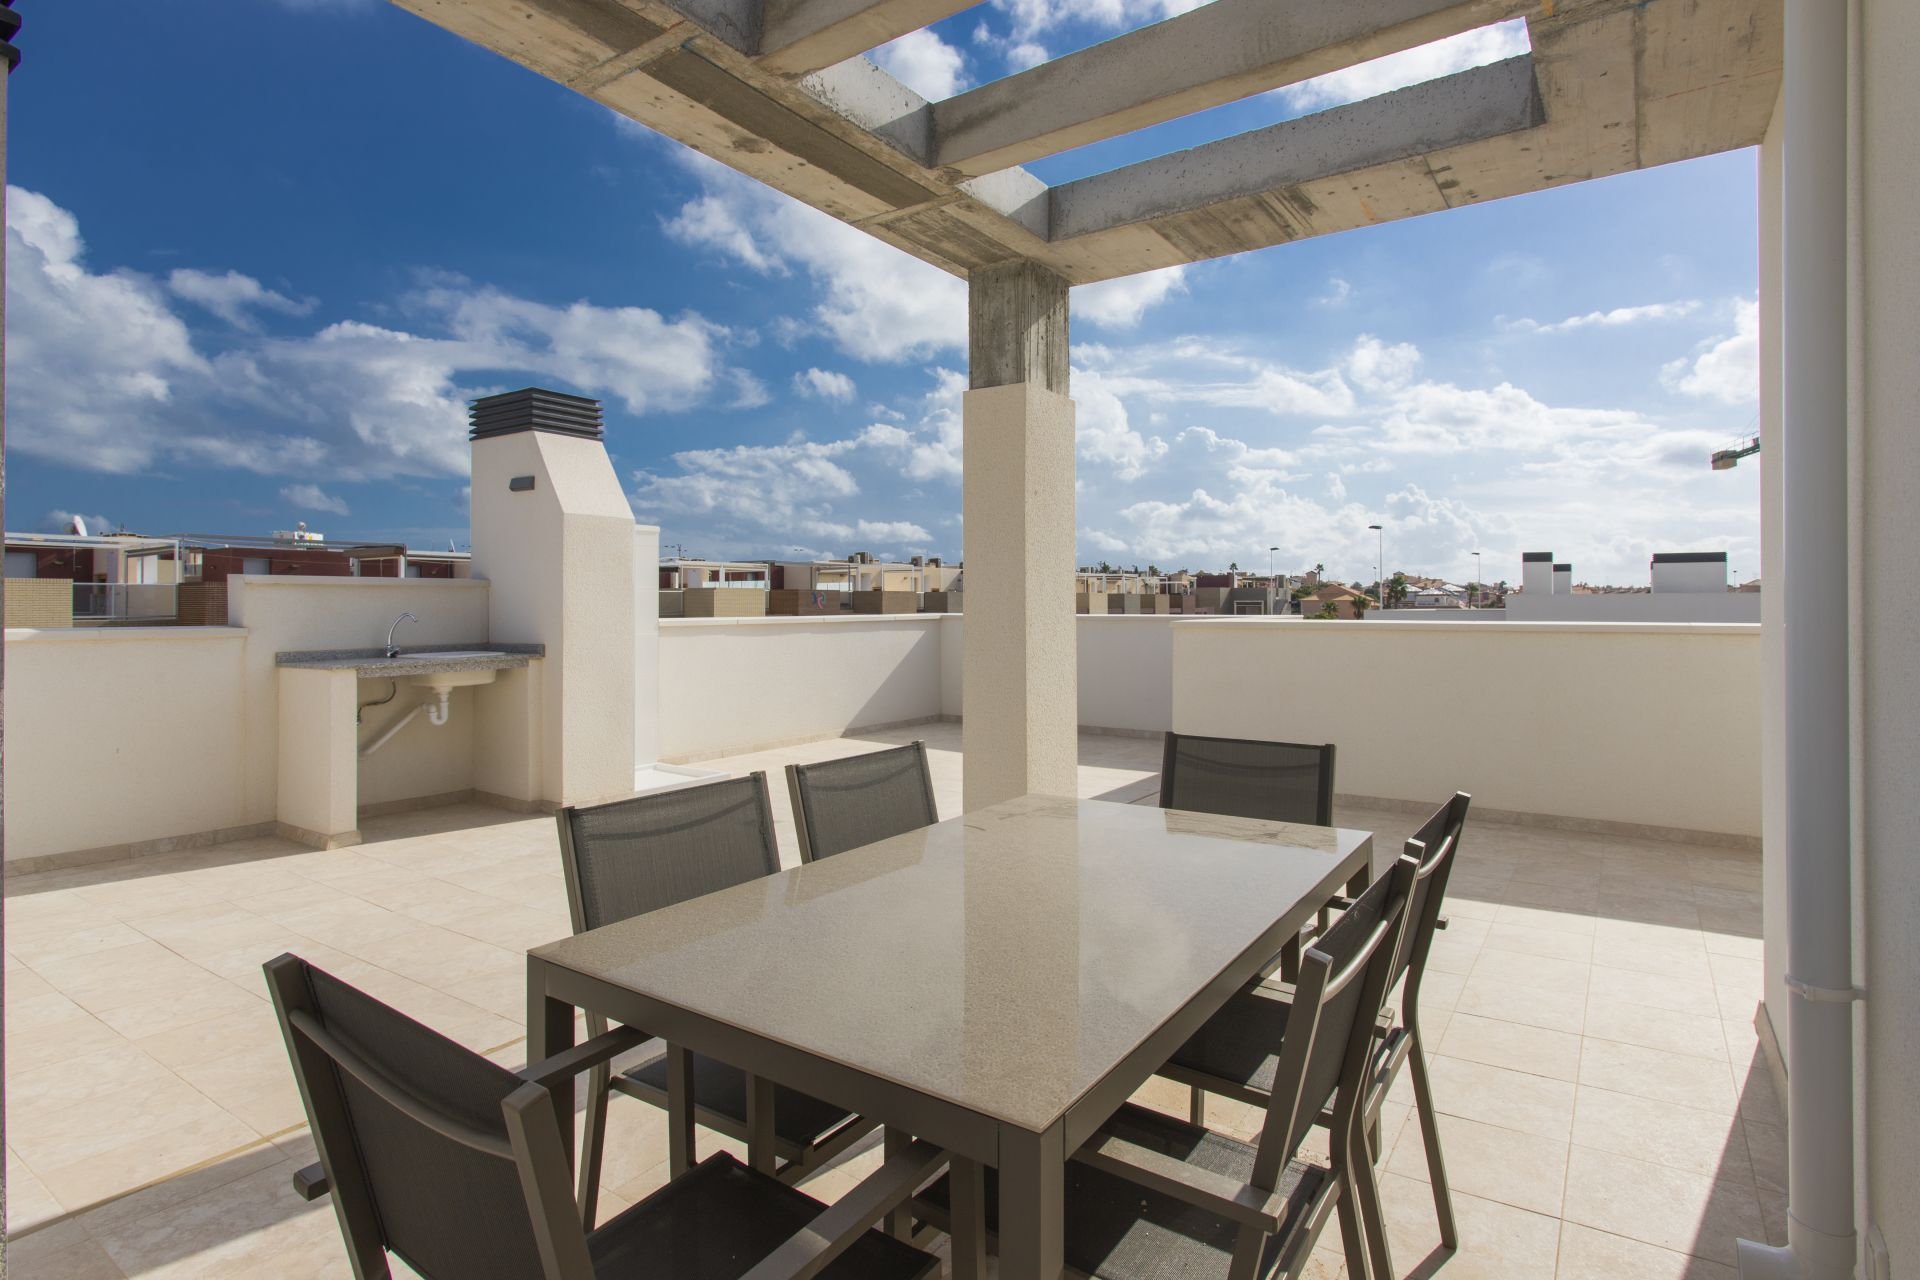 Apartment with 2 or 3 bedrooms and 2 bathrooms with garden, Aguas Nuevas. 10